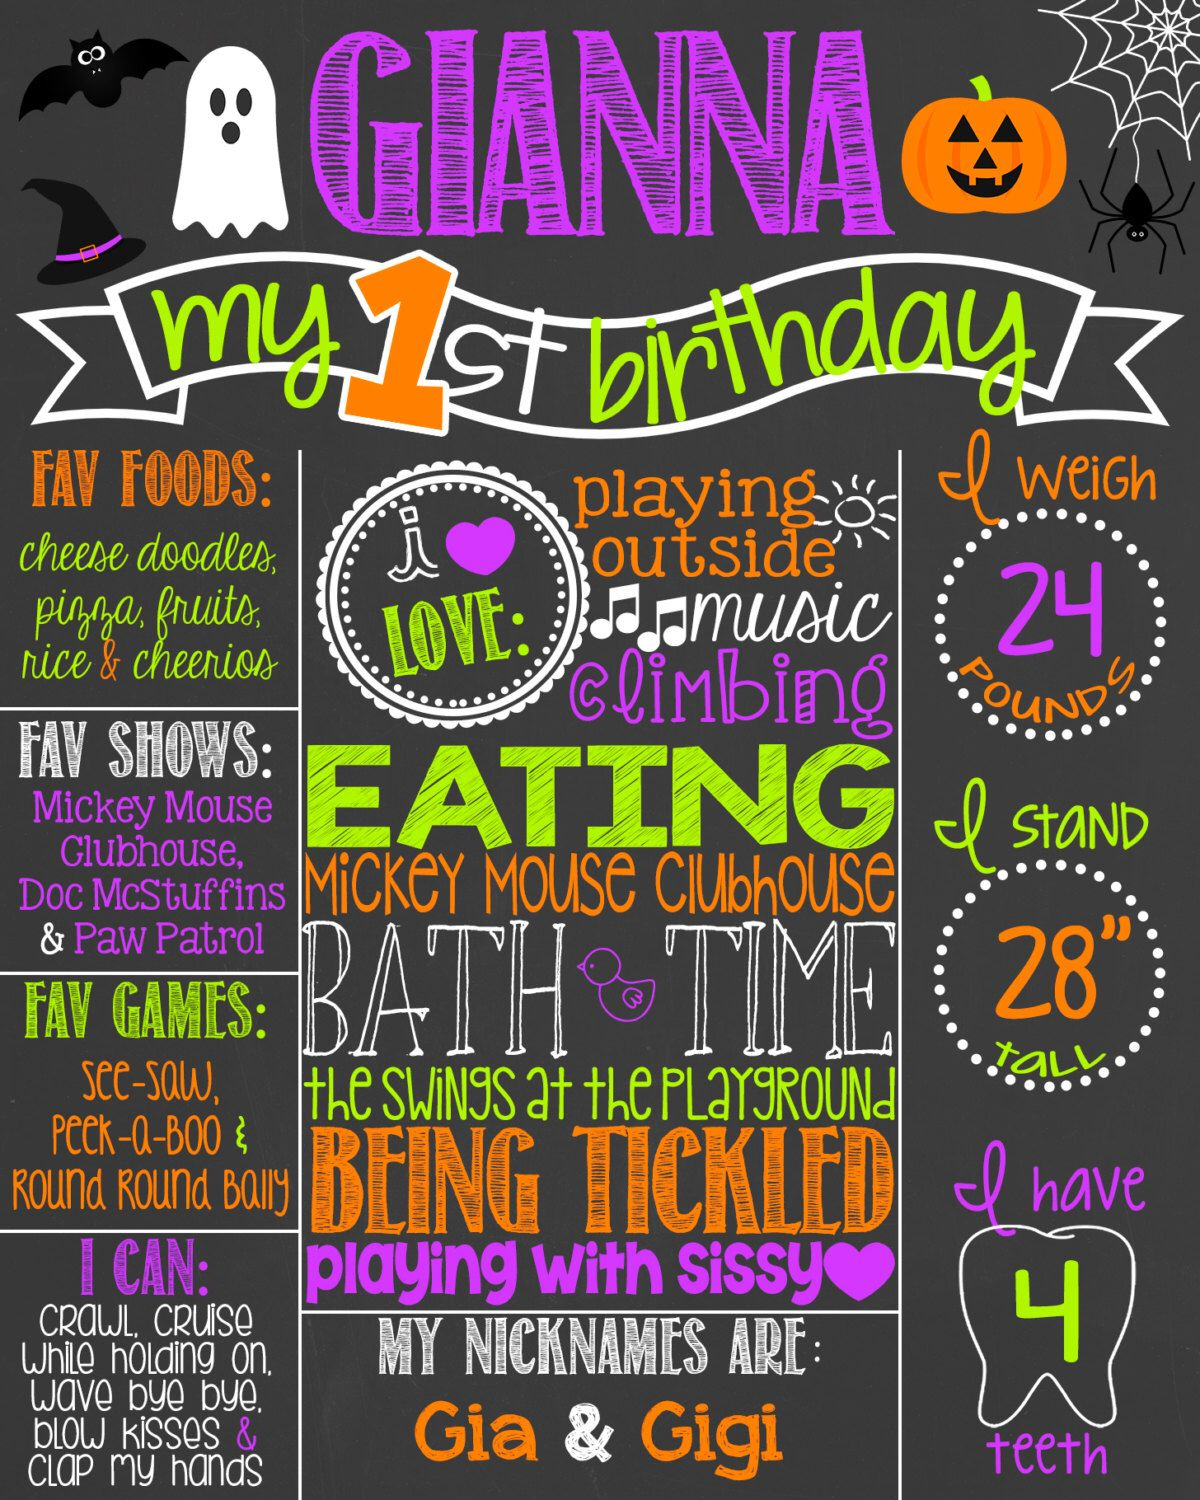 Halloween First Birthday Printable Invitation -5.5x4 | Birthdays ...